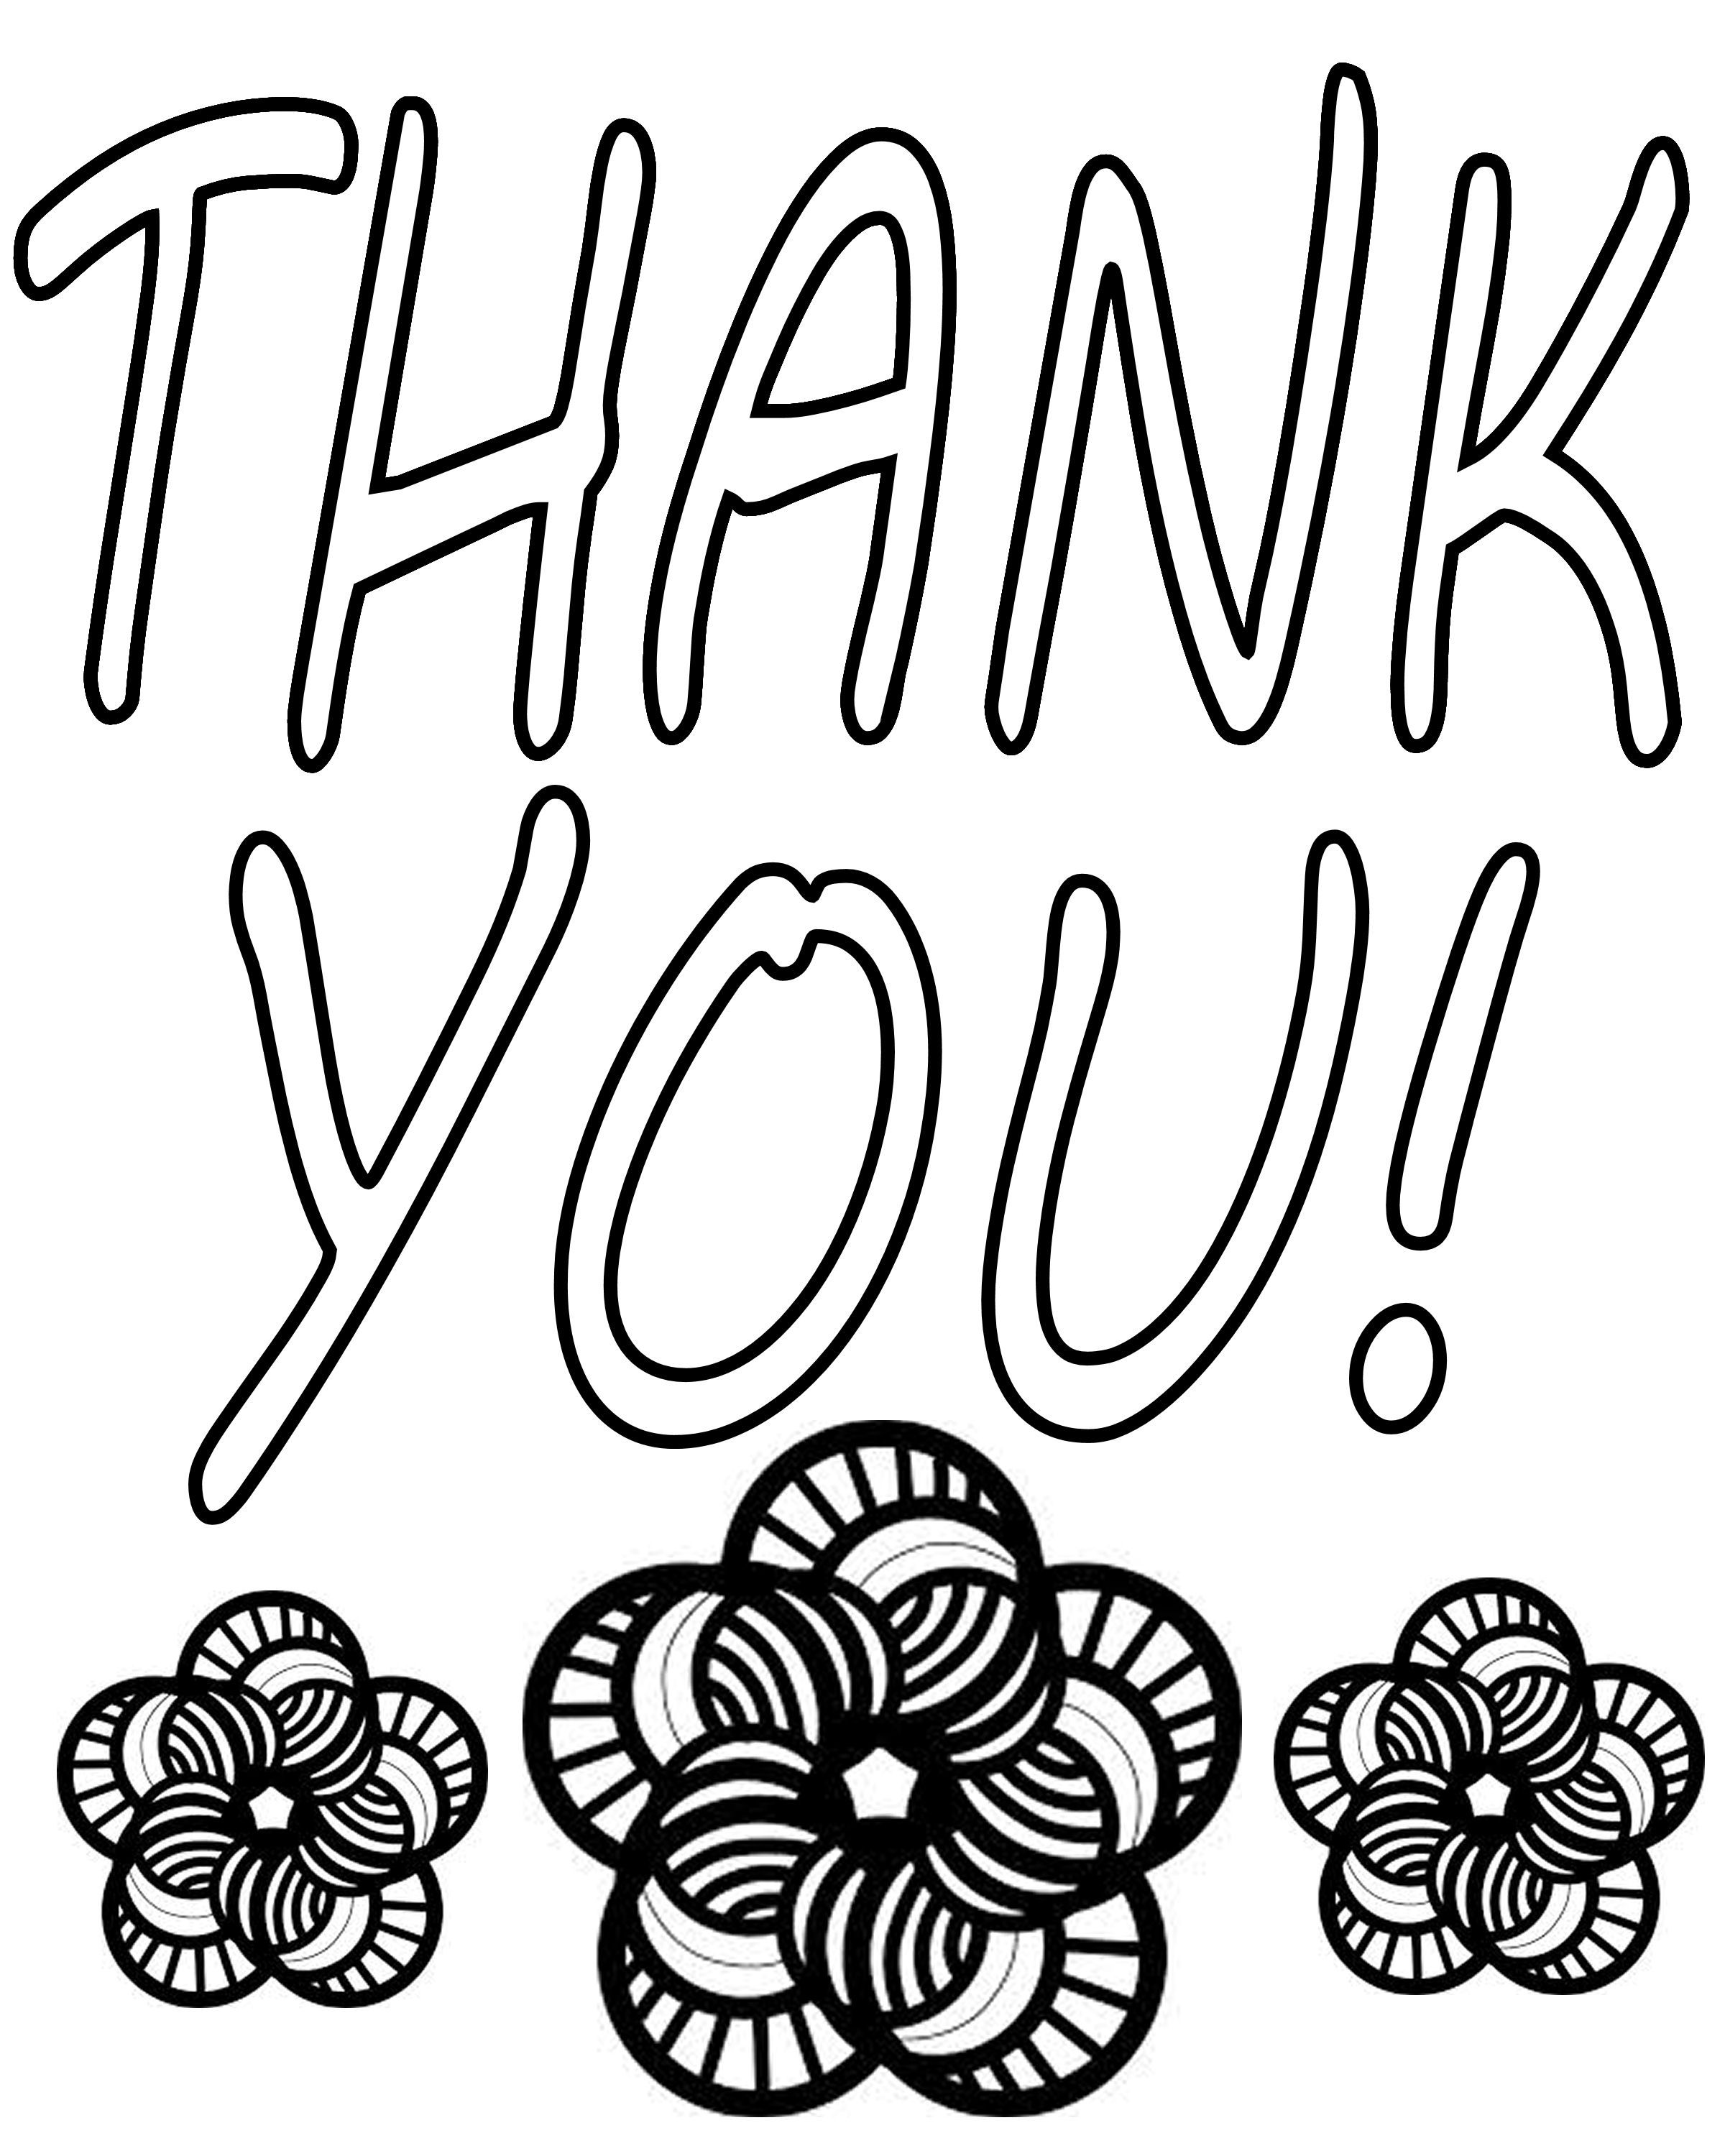 thank you coloring pages 04 Coloring pages for kids